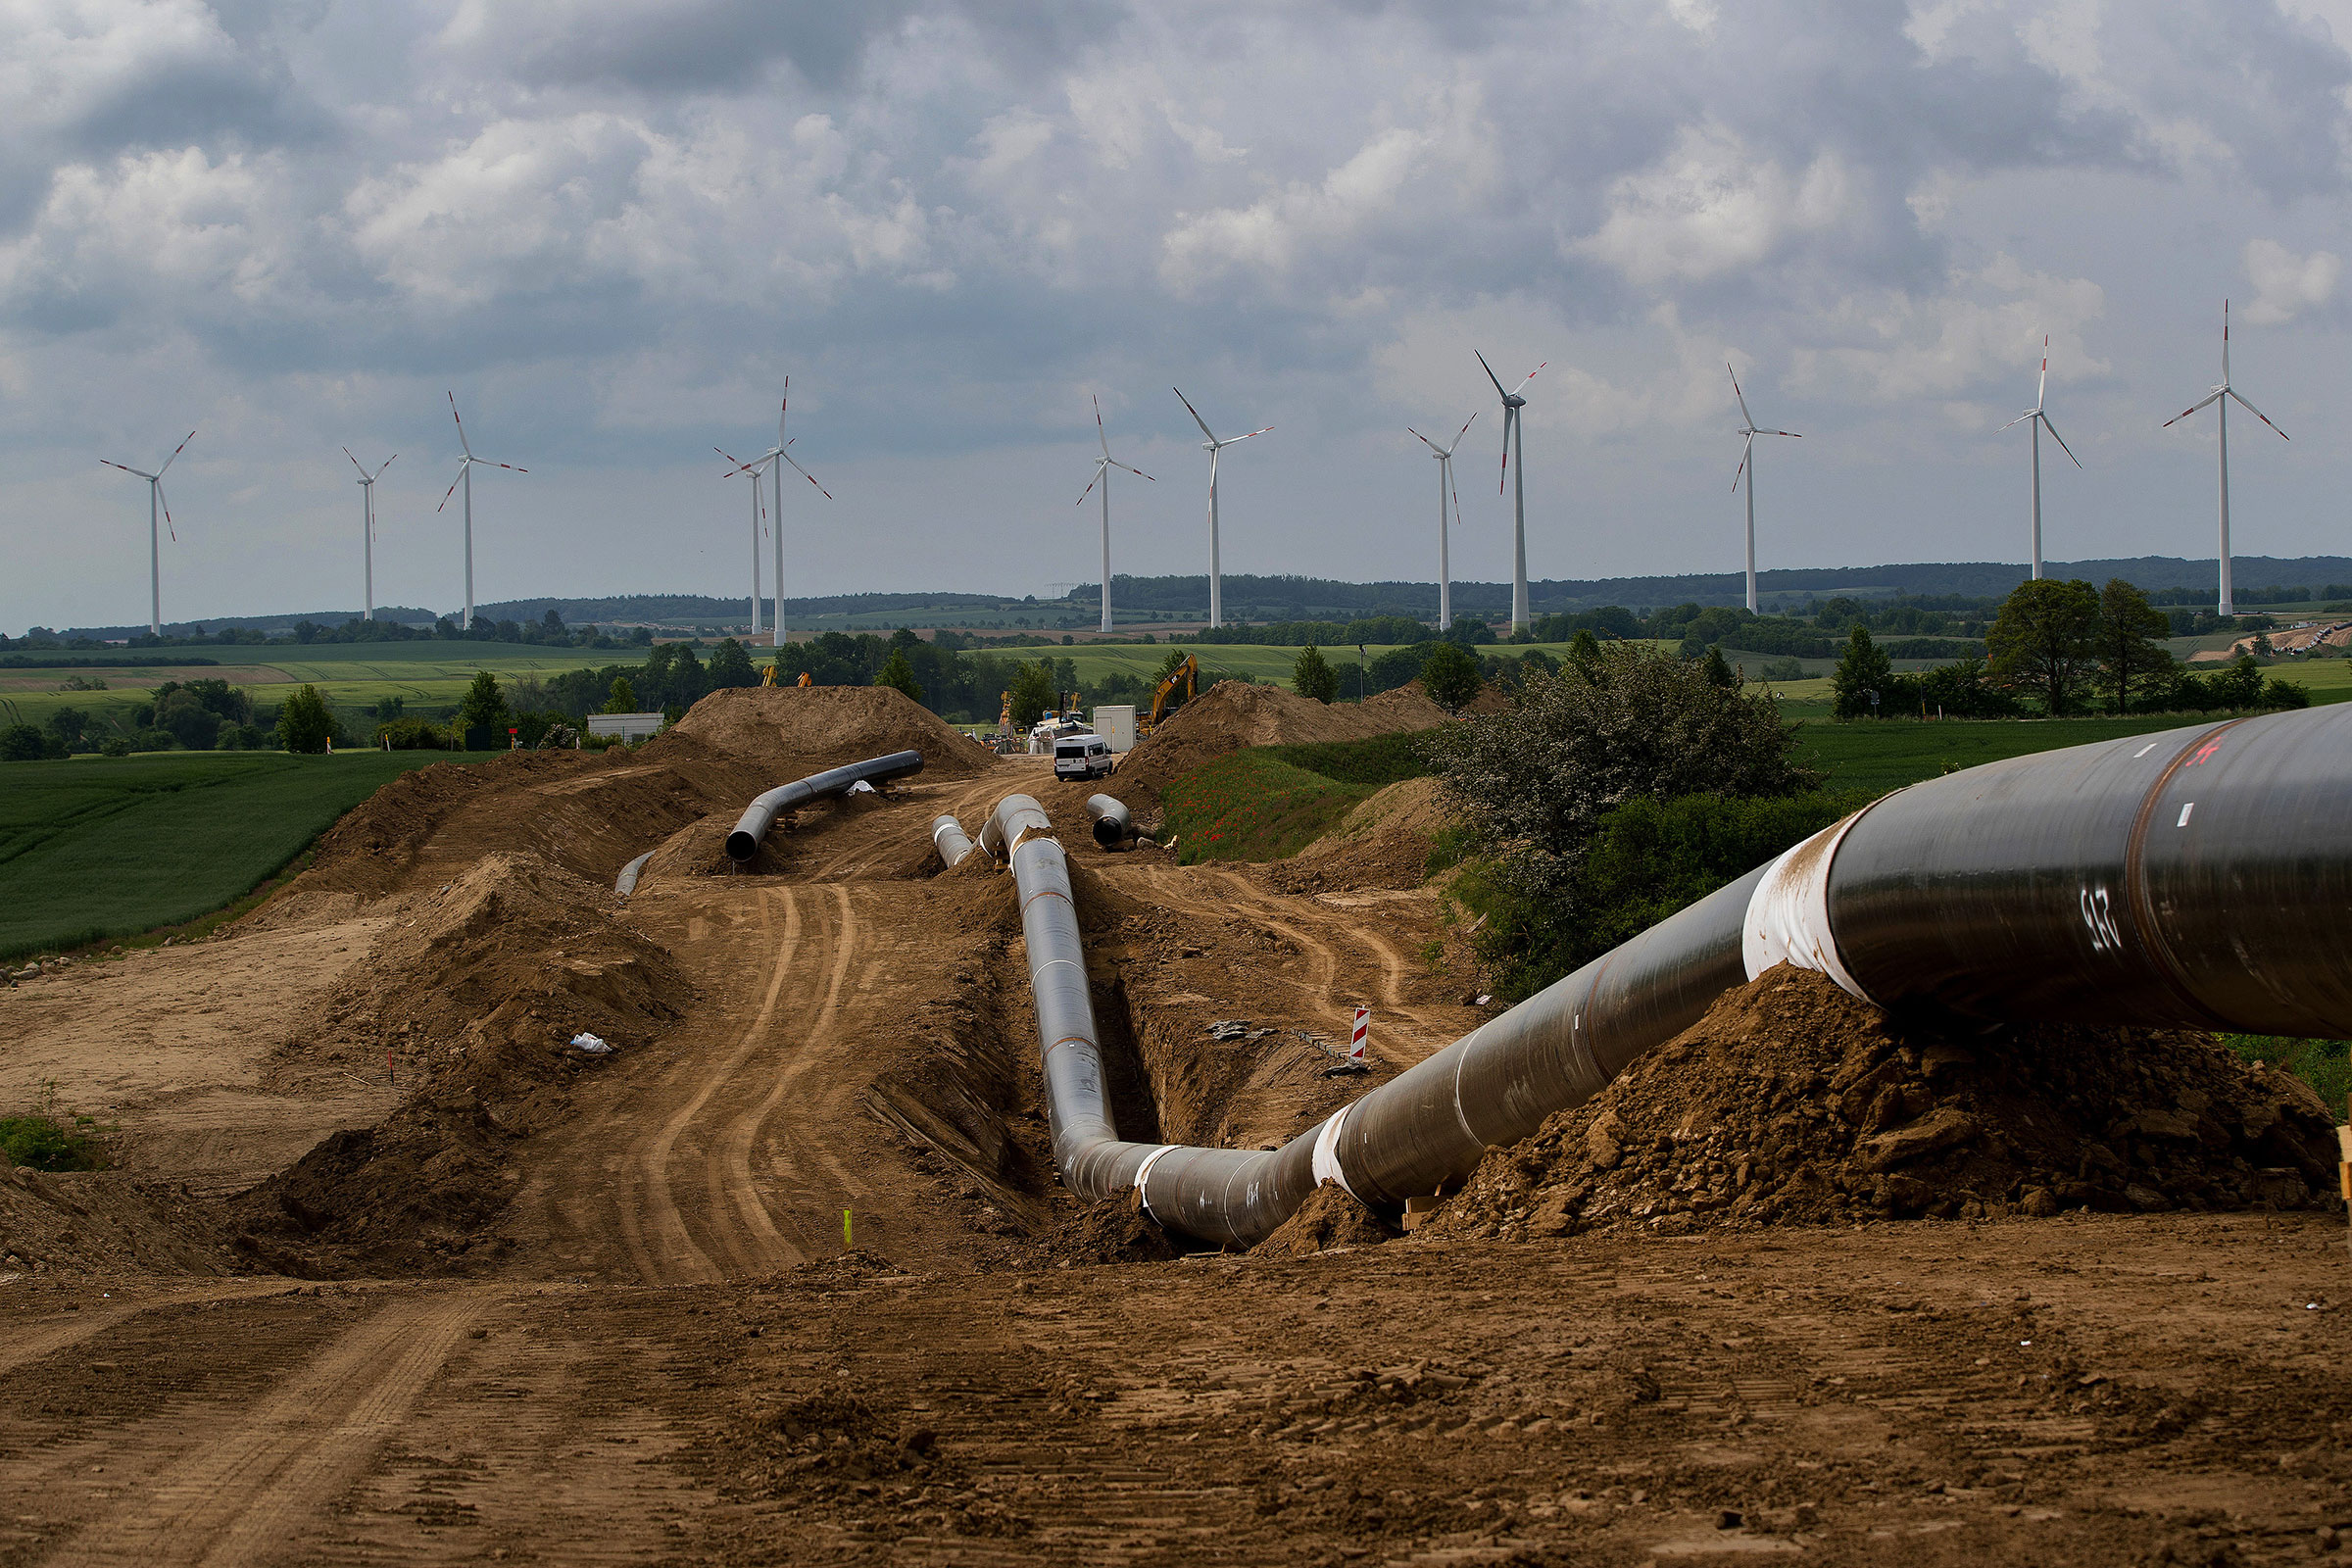 Sections of connected pipeline sit on the European Gas Pipeline Link site, as wind turbines operate in the distance in Gellmersdorf, Germany, May 28, 2019.